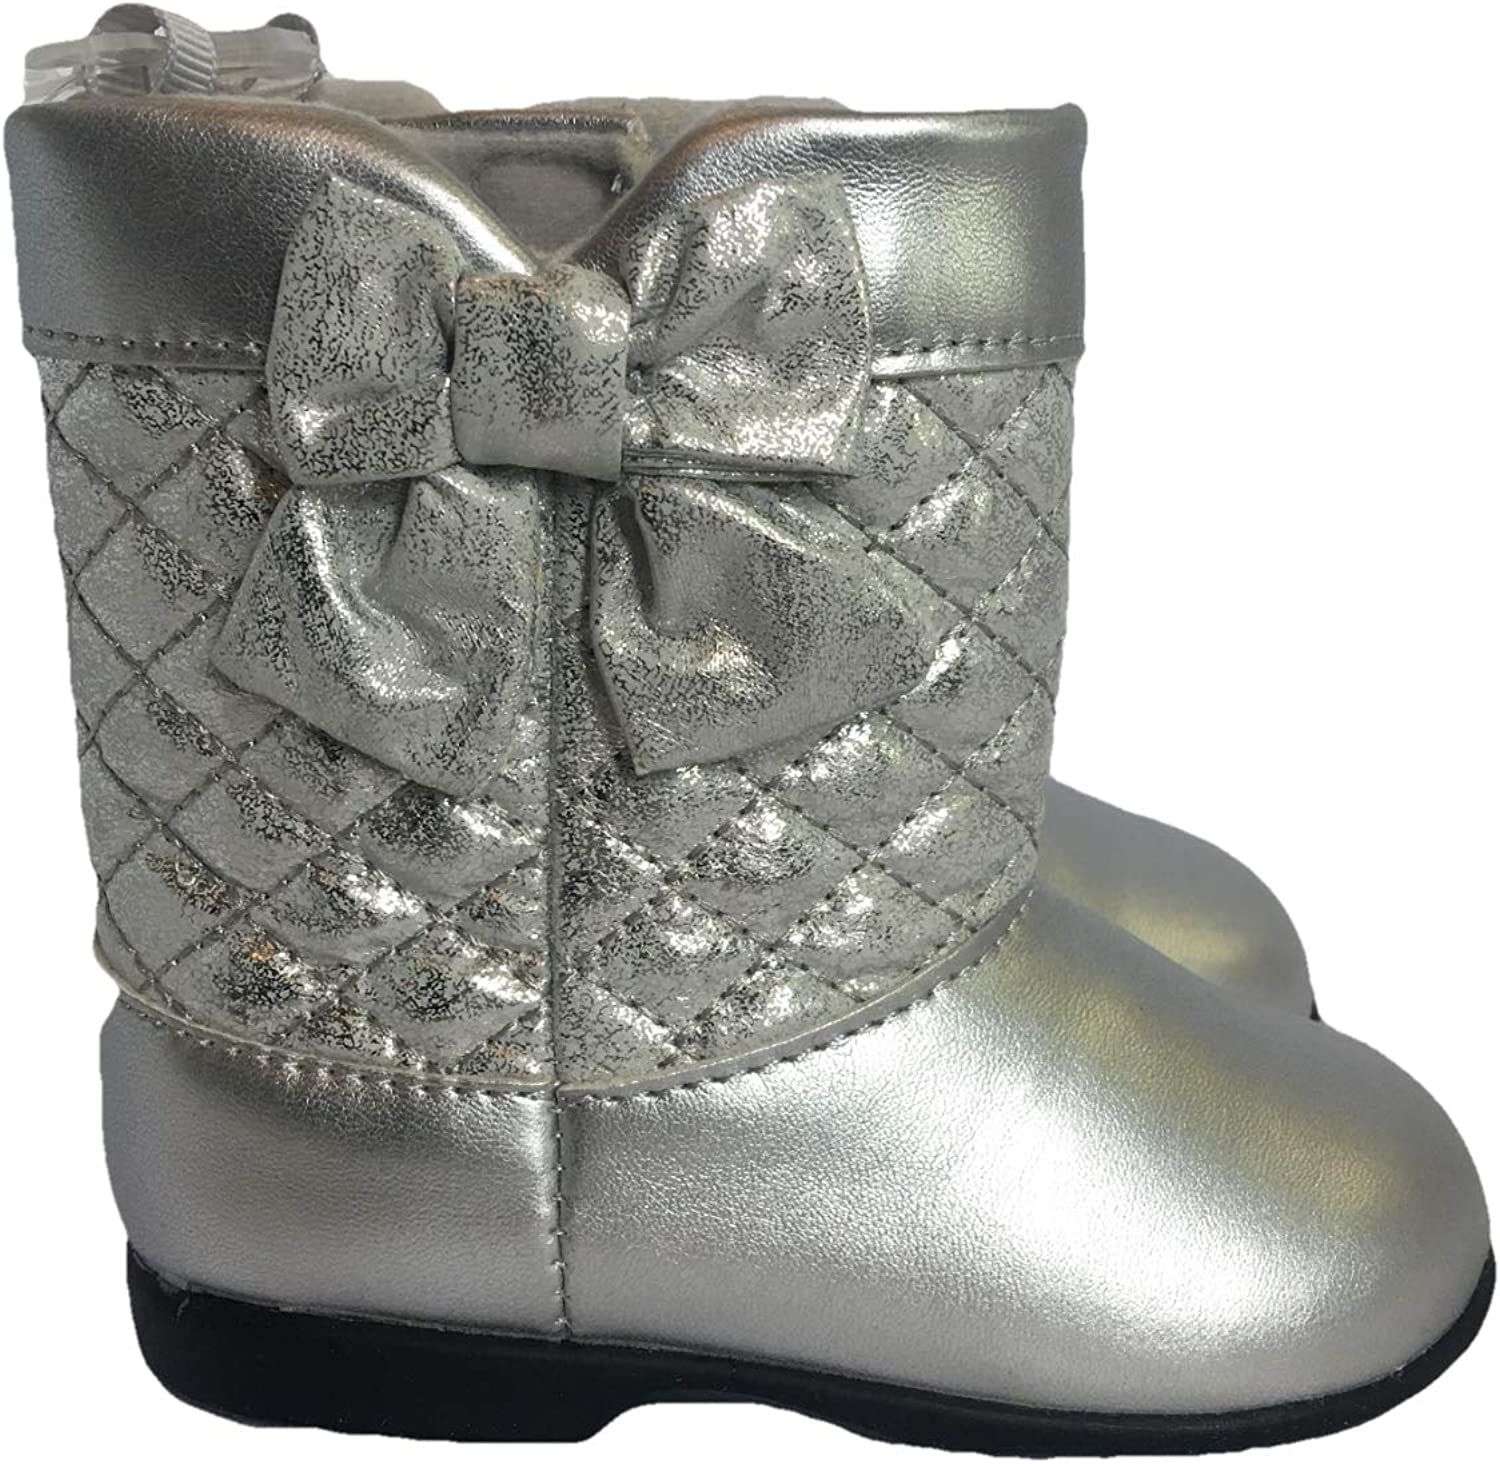 Baby Deer Size 4 9-12 Months Walking Stage Girls Boots Silver Metallic